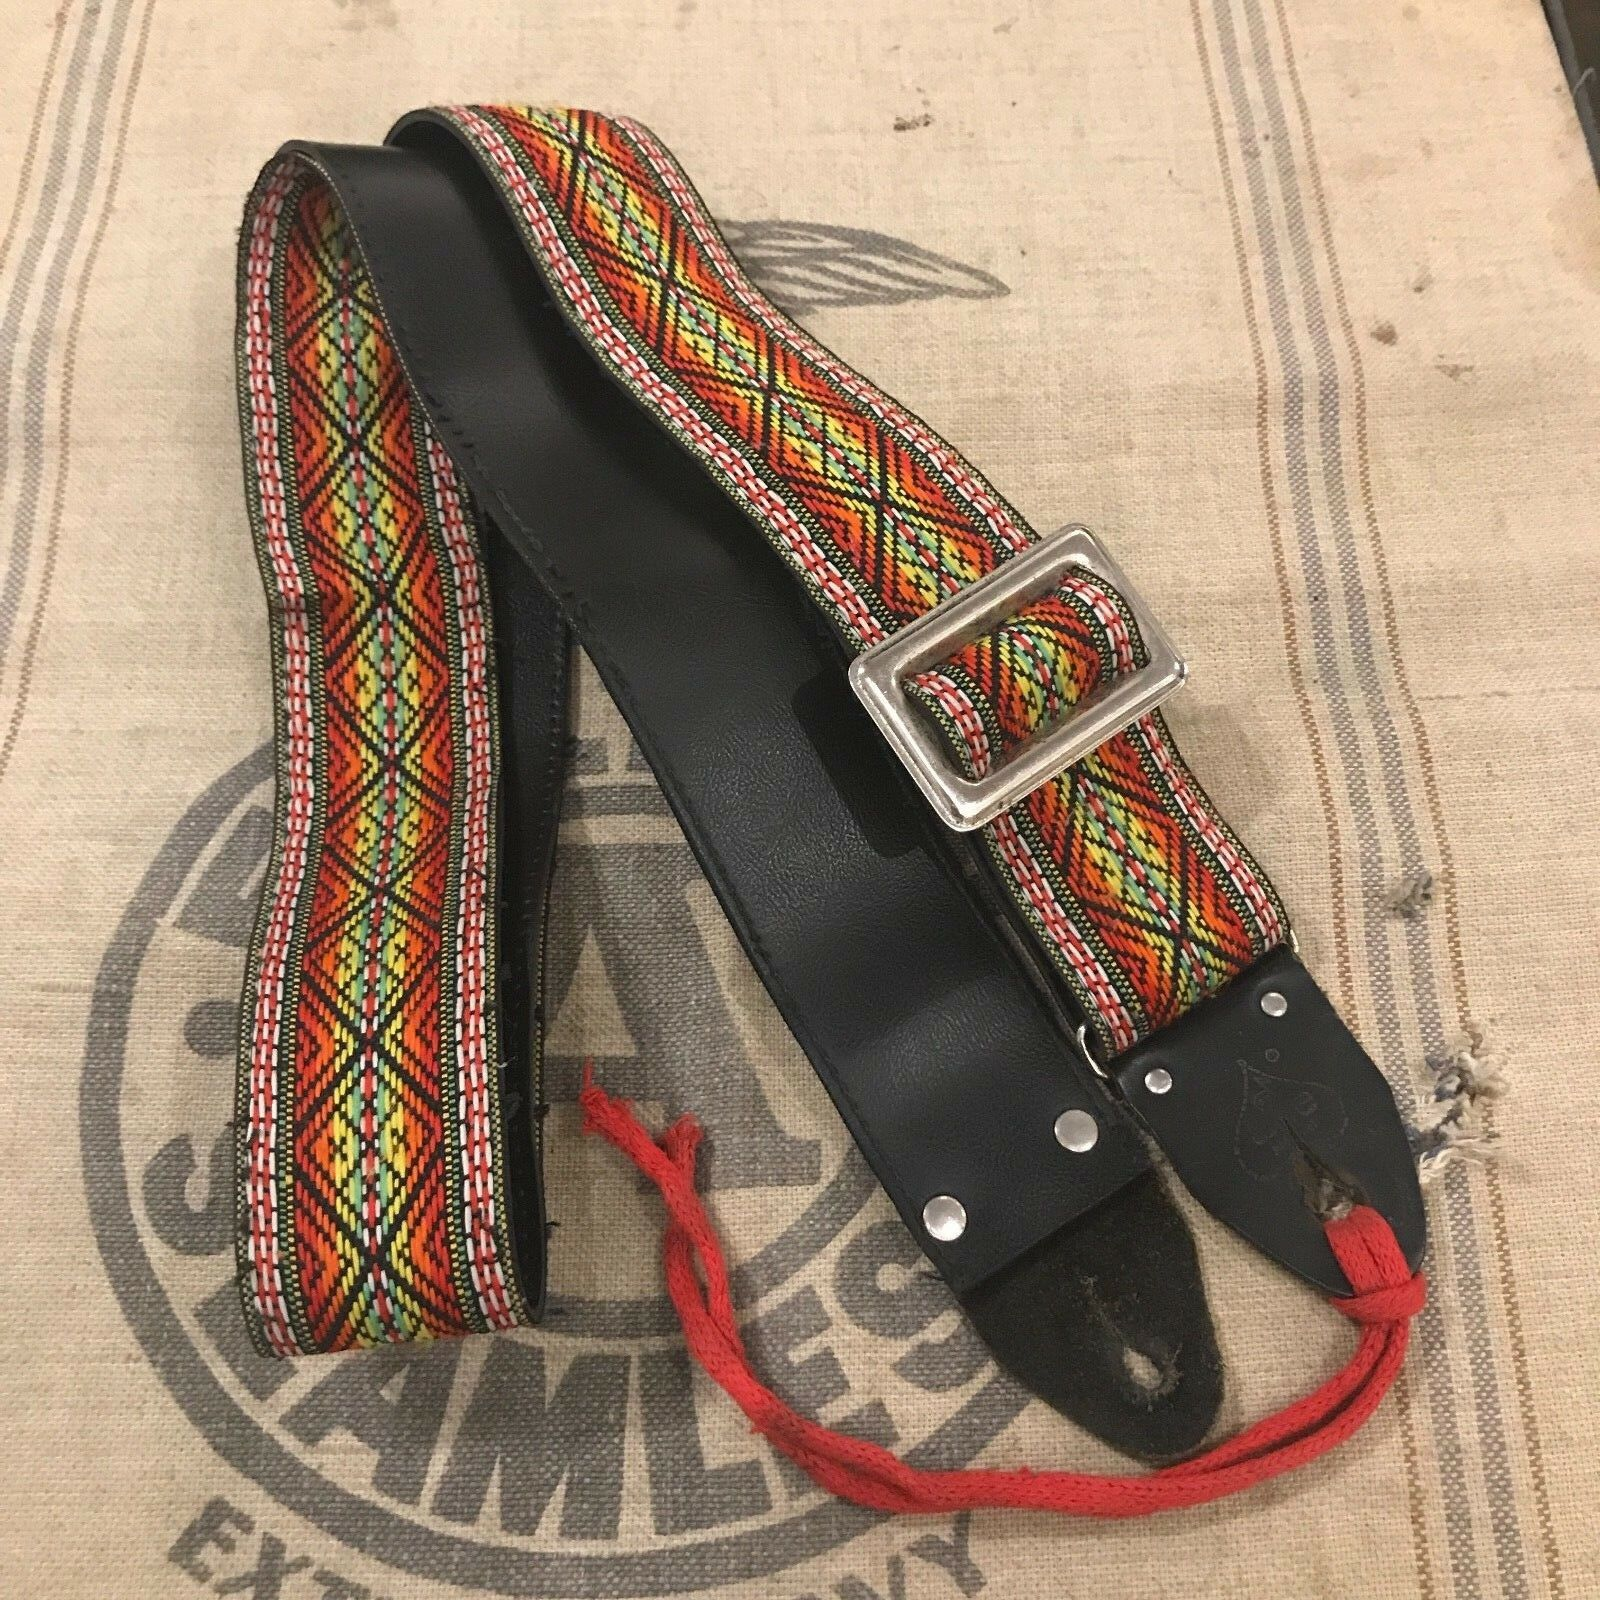 Vintage 1960's Ace Guitar Strap Made in USA rot, Grün & Gelb Hootenanny Strap